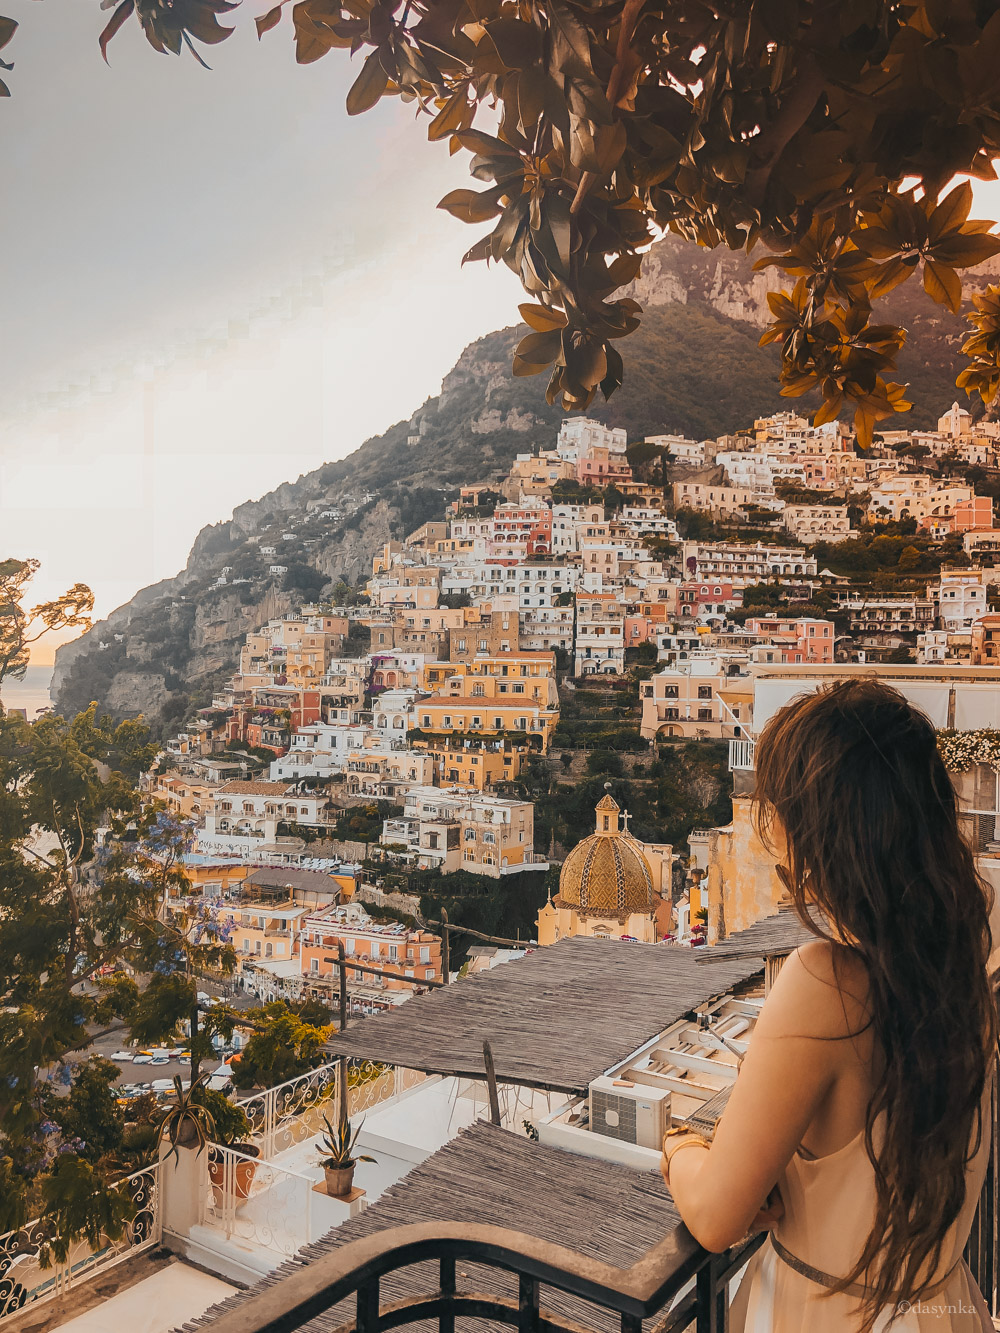 dasynka-fashion-blog-blogger-influencer-inspiration-shooting-model-globettrotter-travel-girl-lookbook-instagram-long-hair-street-style-casual-italy-lifestyle-outfit-poses-positano-amalfi-coast-blue-long-dress-colorful-beach-marina-grande-chloe-bag-sea-italy-look-ideas-elegant-italian-style-sandals-tips-atrani-habits-sorbet-lemon-covo-dei-saraceni-marina-grande-food-chez-black